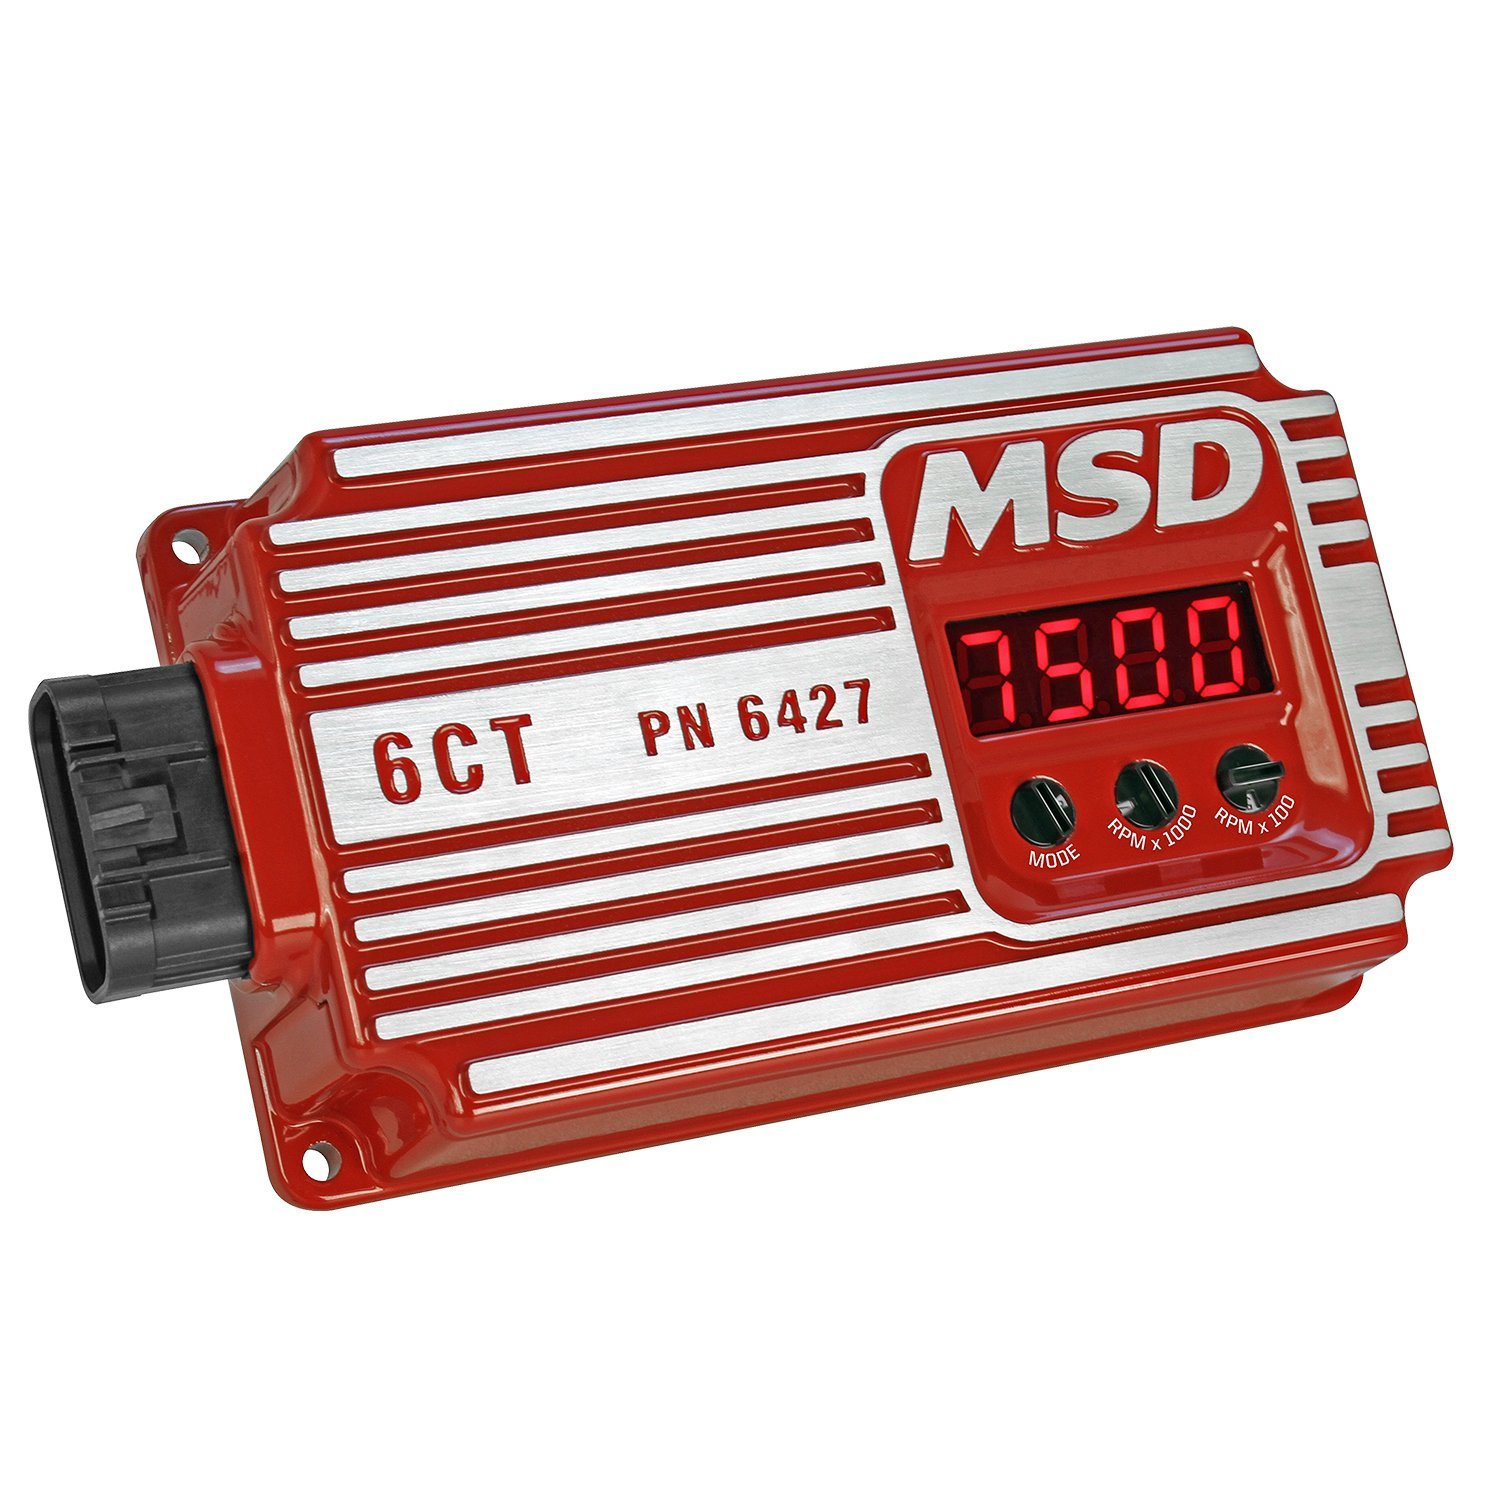 MSD 6CT Ignition Control